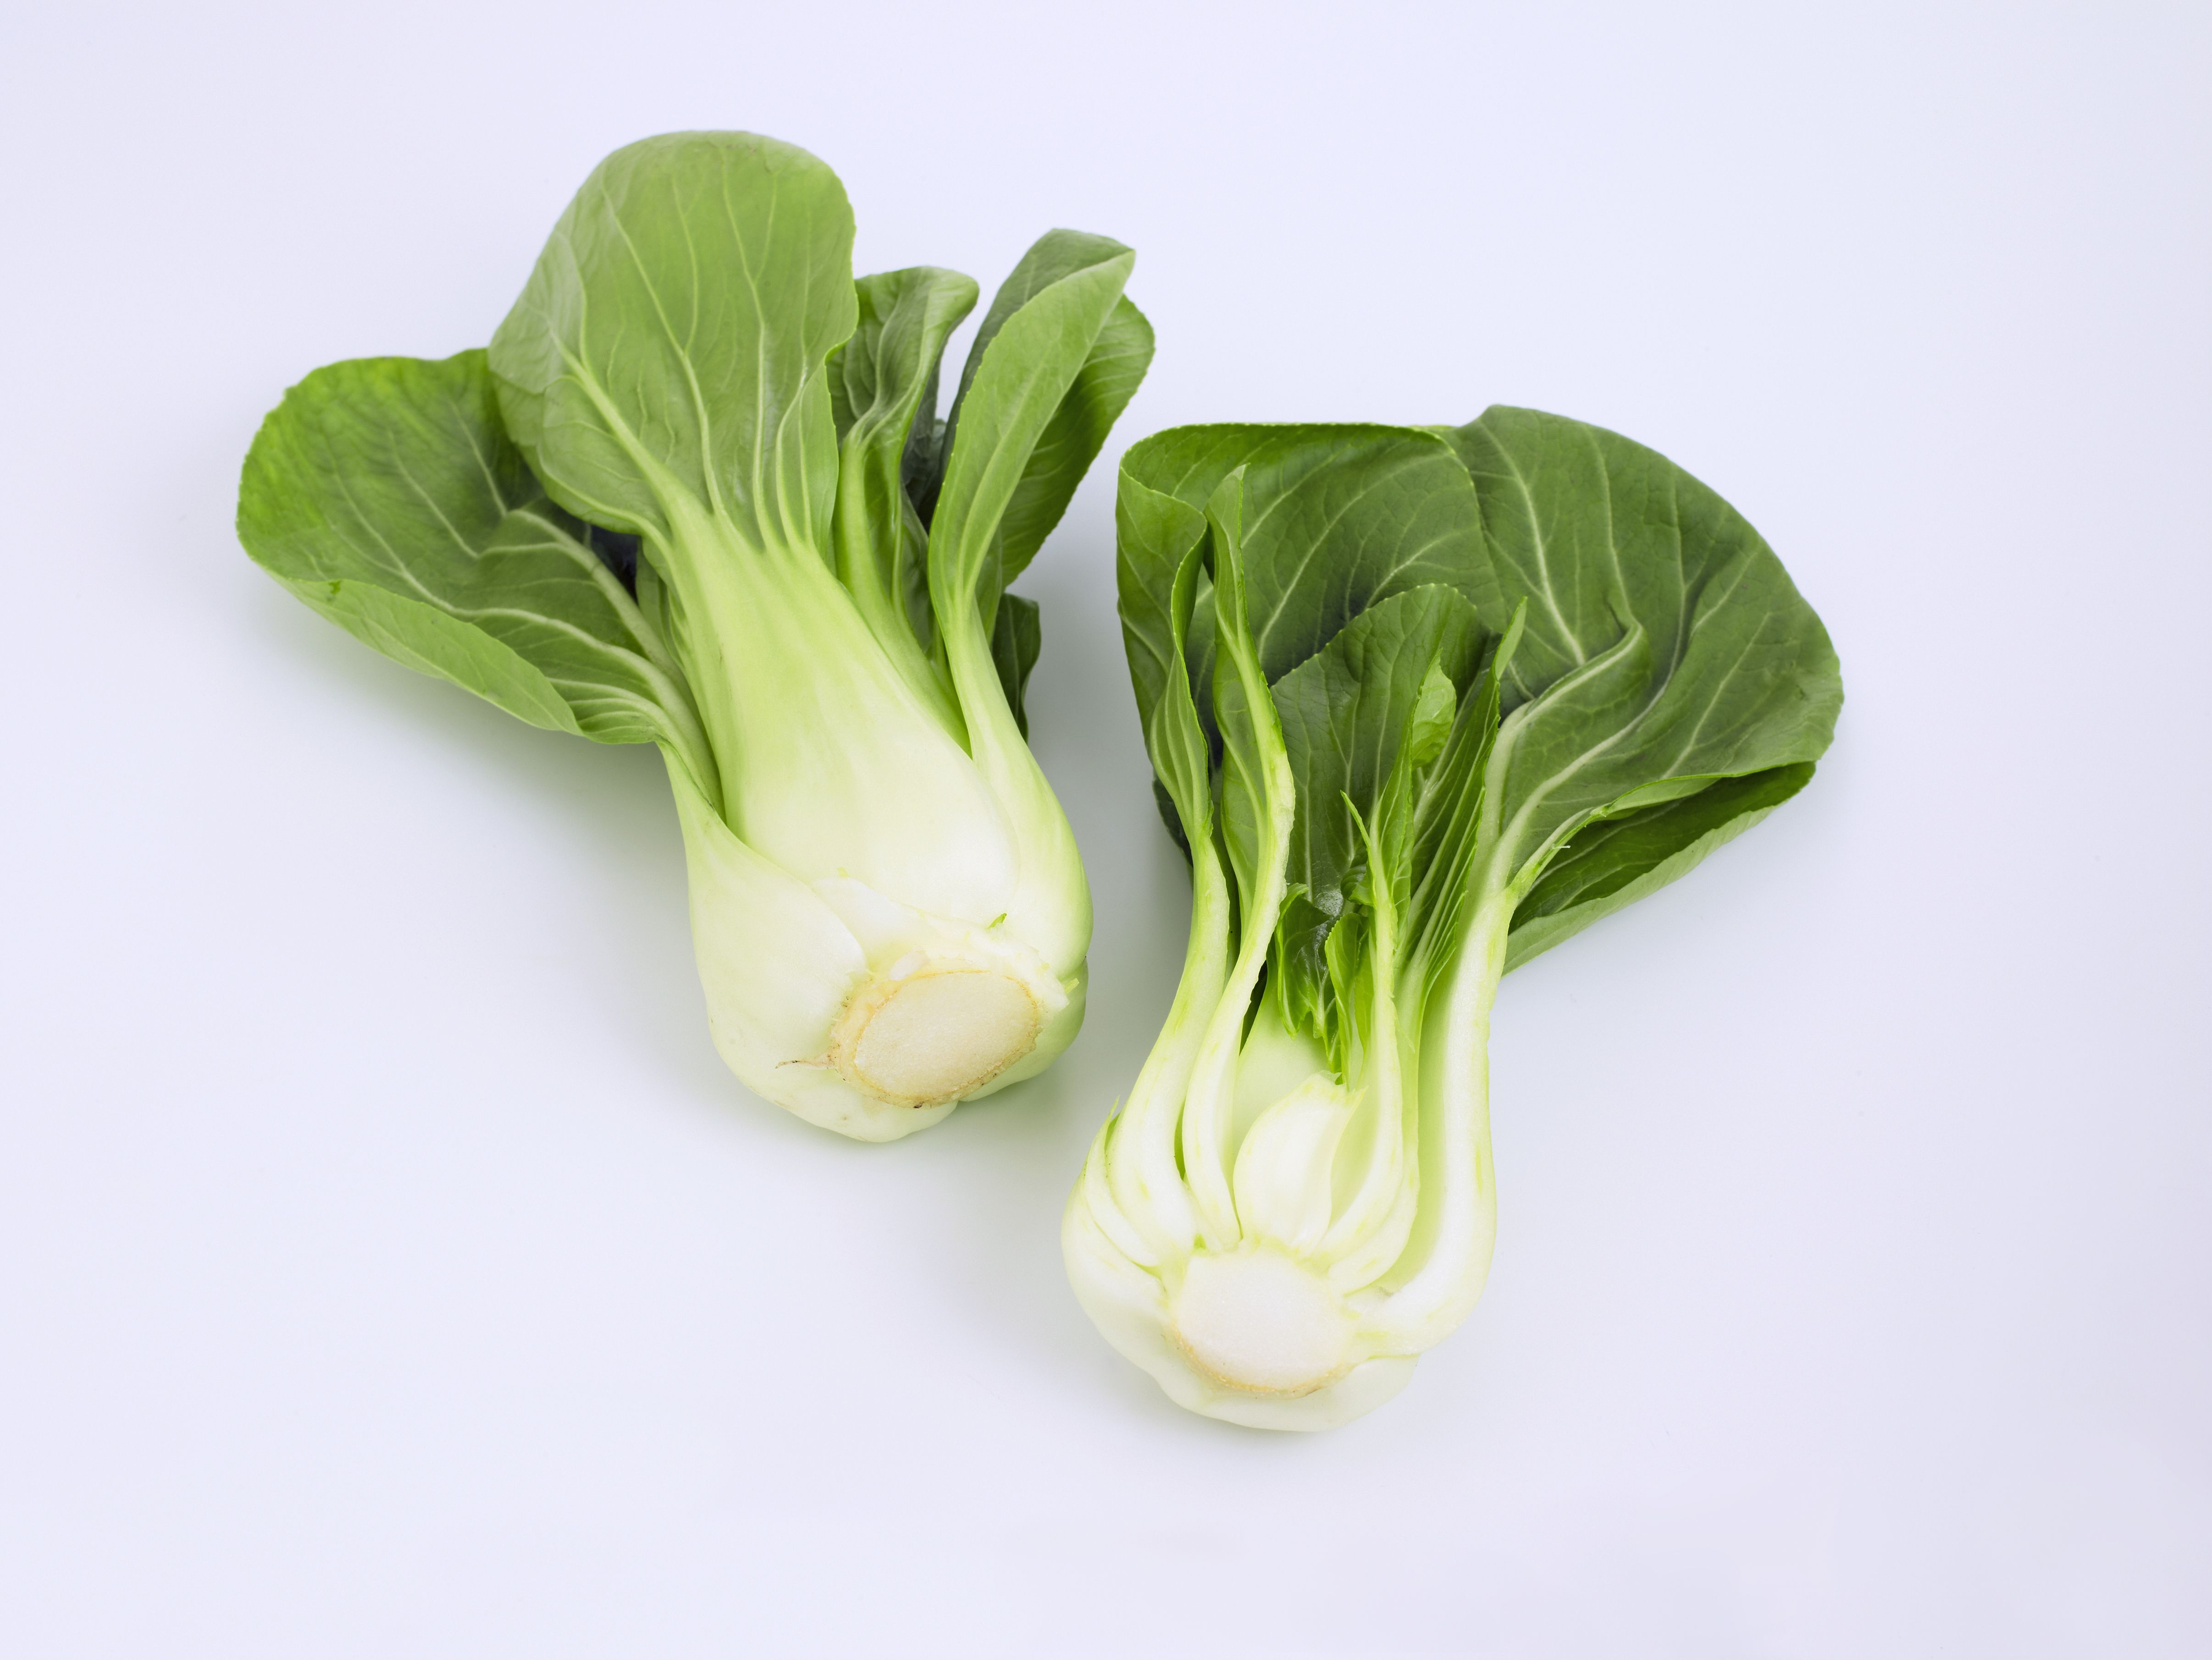 chinese vegetables photo gallery and descriptions